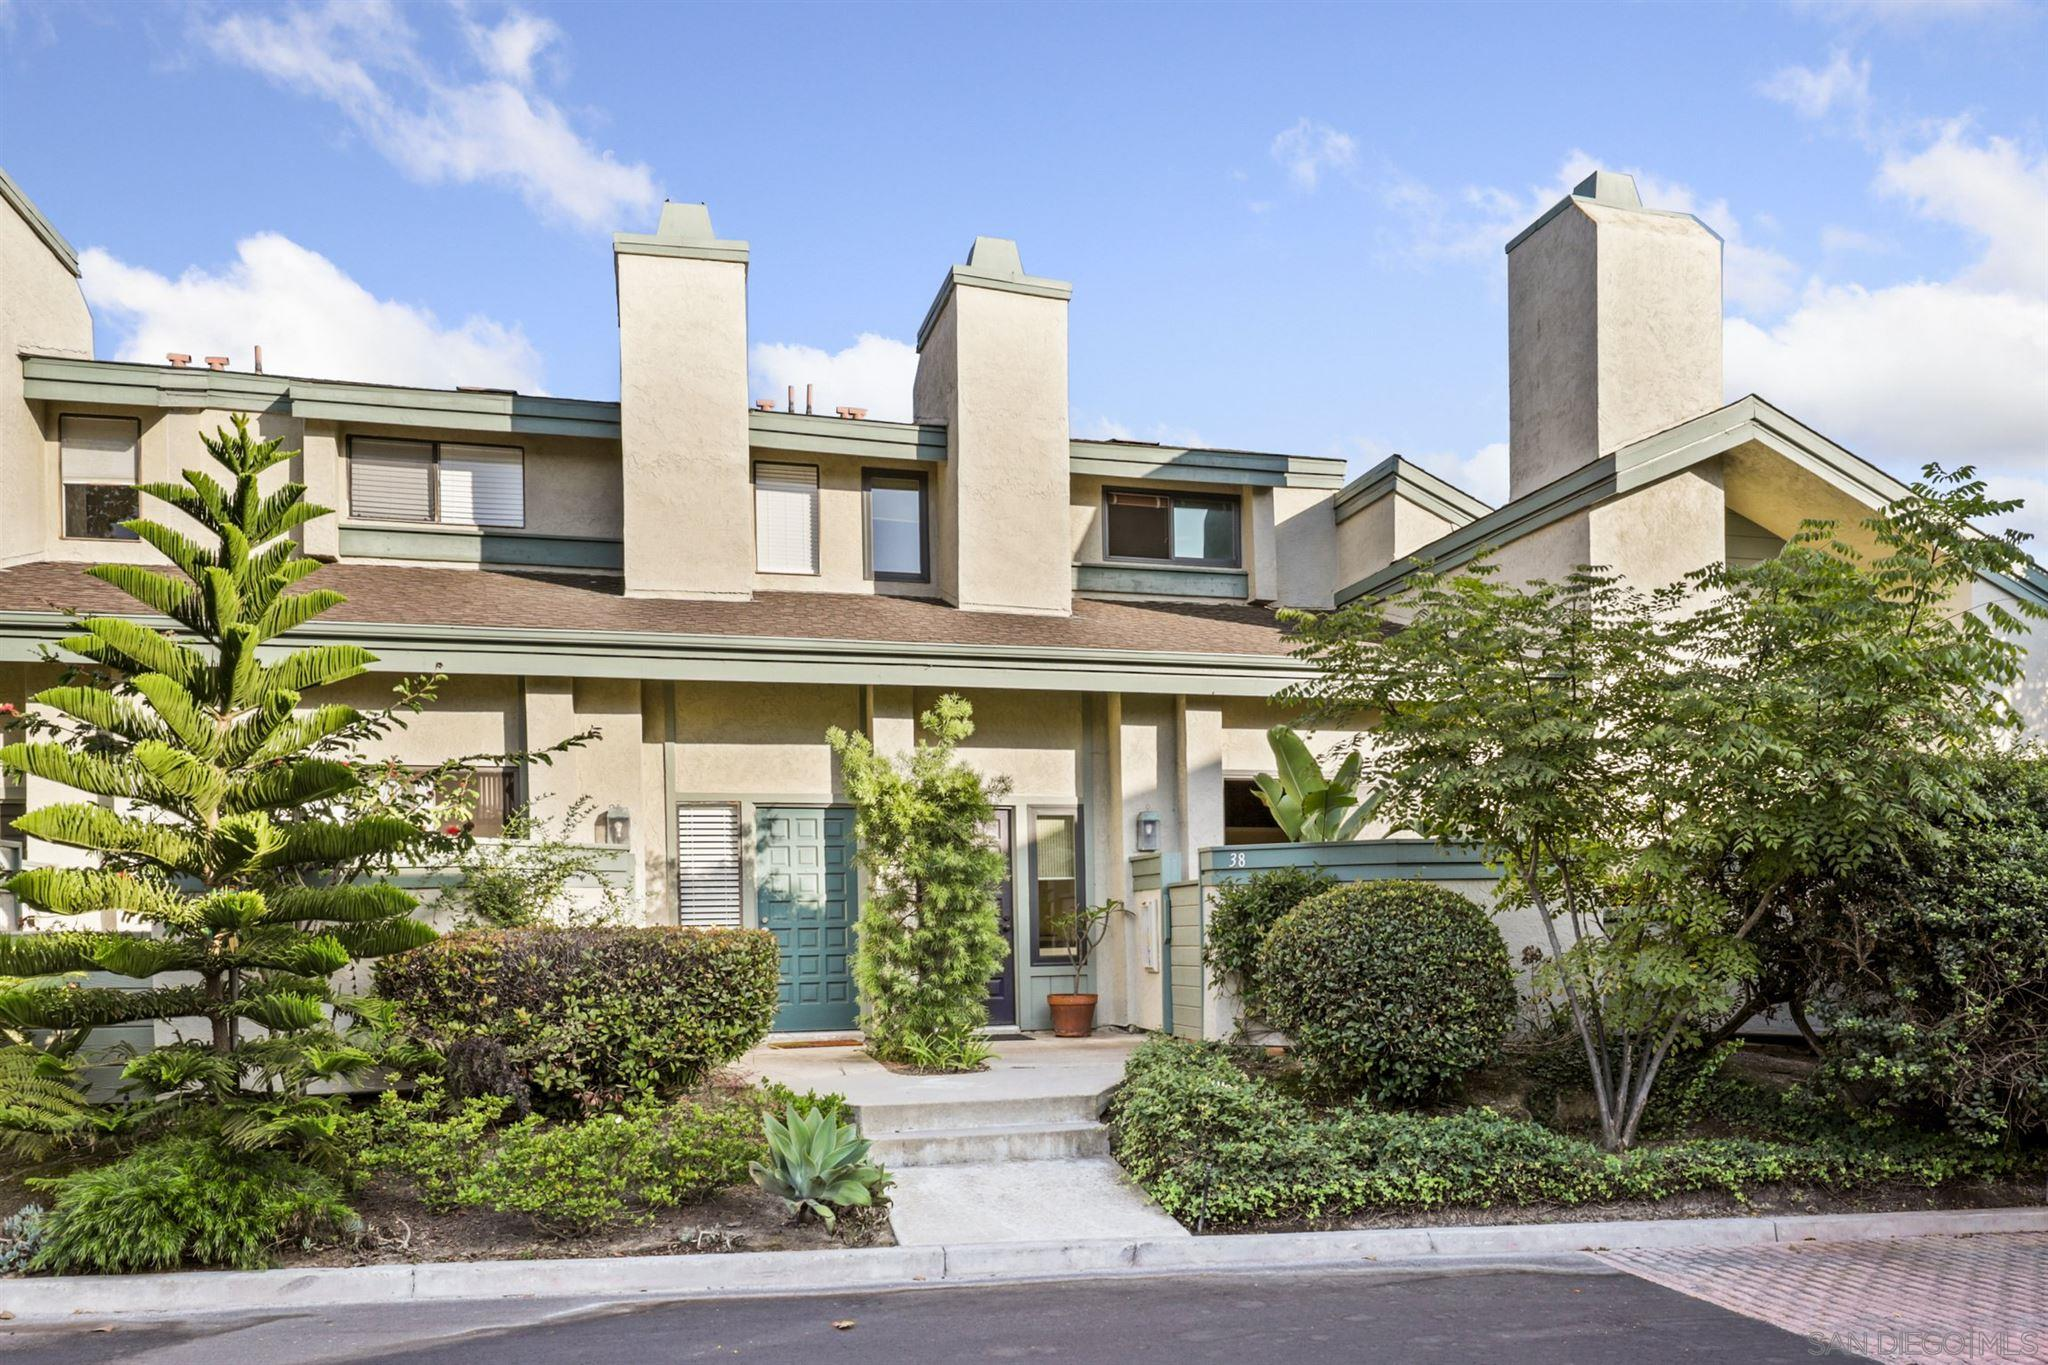 Well maintained tri-level townhome with an attached two-car garage located within the highly desirable community of Eastbluff in La Jolla.  This amazing property features a stellar location west of the 5, with neutral paint and trim, a cozy fireplace, and durable laminate flooring throughout.  High ceiling and newer dual pane windows bask the home in an abundance of natural light.A beautifully appointed kitchen boasting quartz countertops with a custom tile backsplash, recessed lighting, stainless steel appliances, and crisp white cabinetry.  There is a bedroom and bath on the main level.  The remaining bedrooms are upstairs including the spacious primary suite offering a large closet and its own en-suite bathroom.  Outdoor living has been extended to a private patio perfect for taking in the gentle ocean breeze.  Just steps away from Villa La Jolla Park.  Great community amenities include two sparkling pools and a recently remodeled clubhouse.  Conveniently located, just minutes away from The Village of La Jolla, shopping, dining, great schools, the Ocean, Interstate 5, plus so much more.  Don't let this opportunity pass you by!